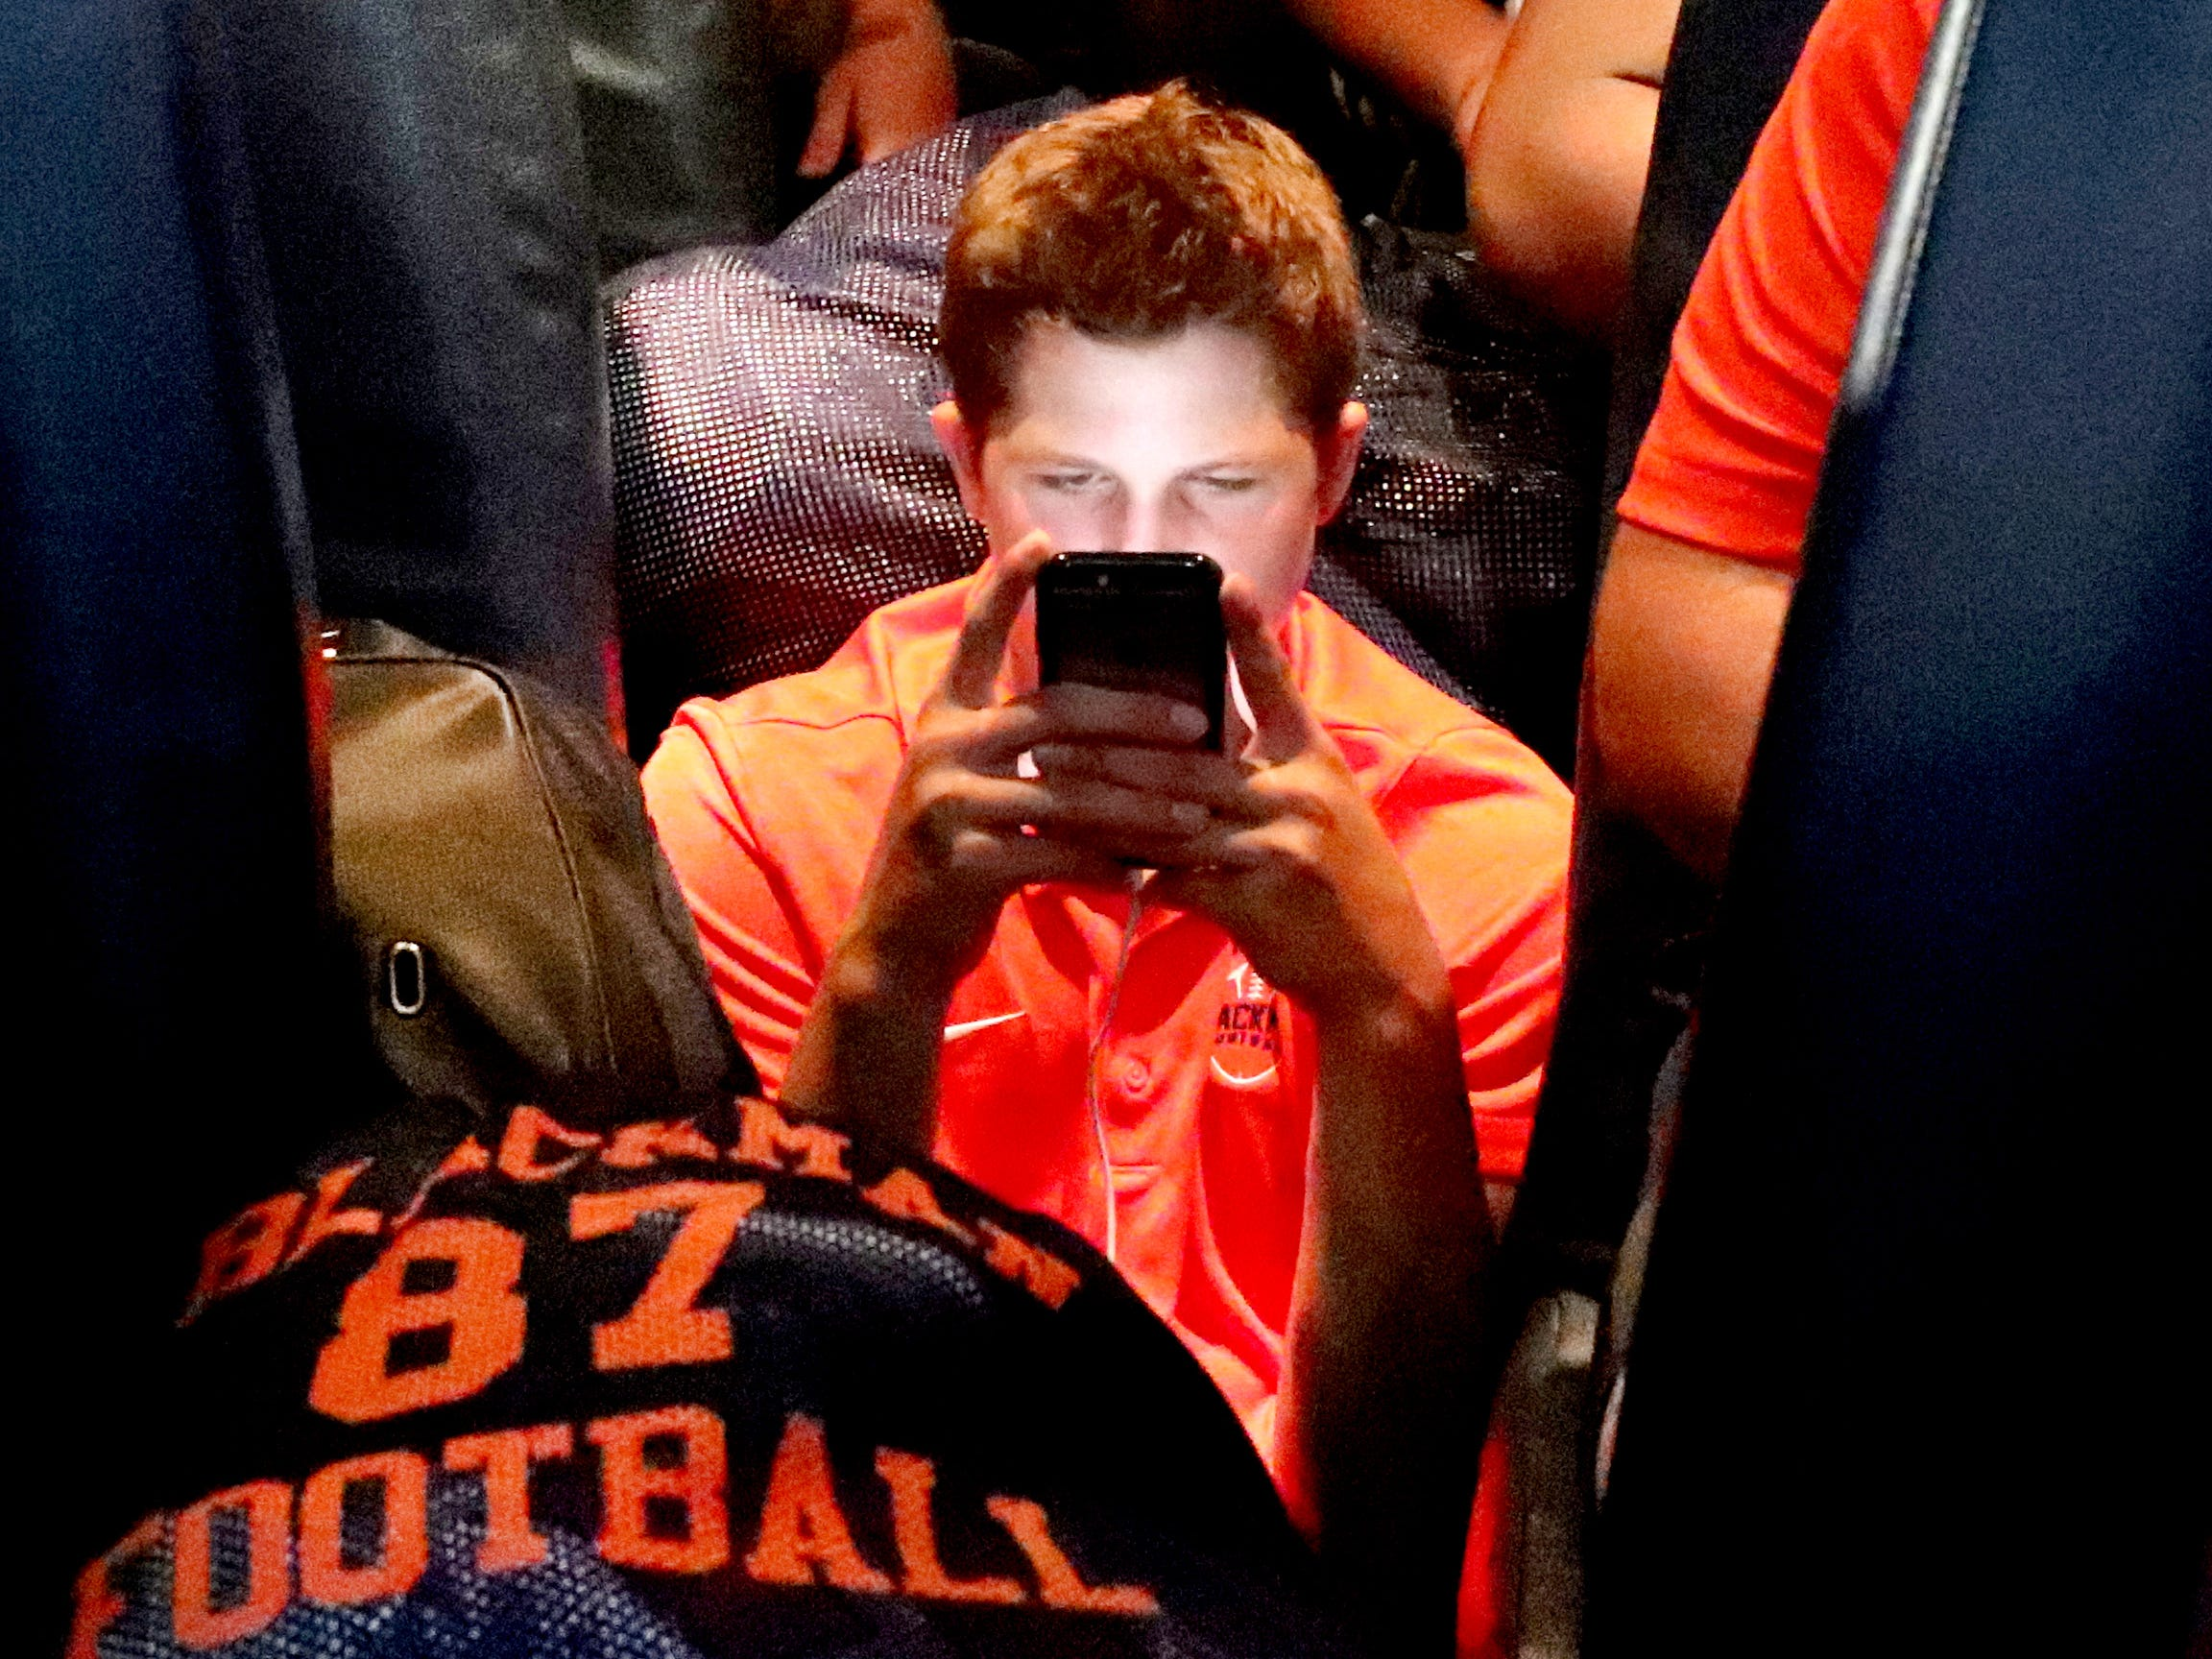 Blackman High School football player Drew Beam settles down in the isle of the bus before heading back to Blackman High School following the team's away game to play against Florence High School, on Friday Aug. 24, 2018, in Florence, Alabama.